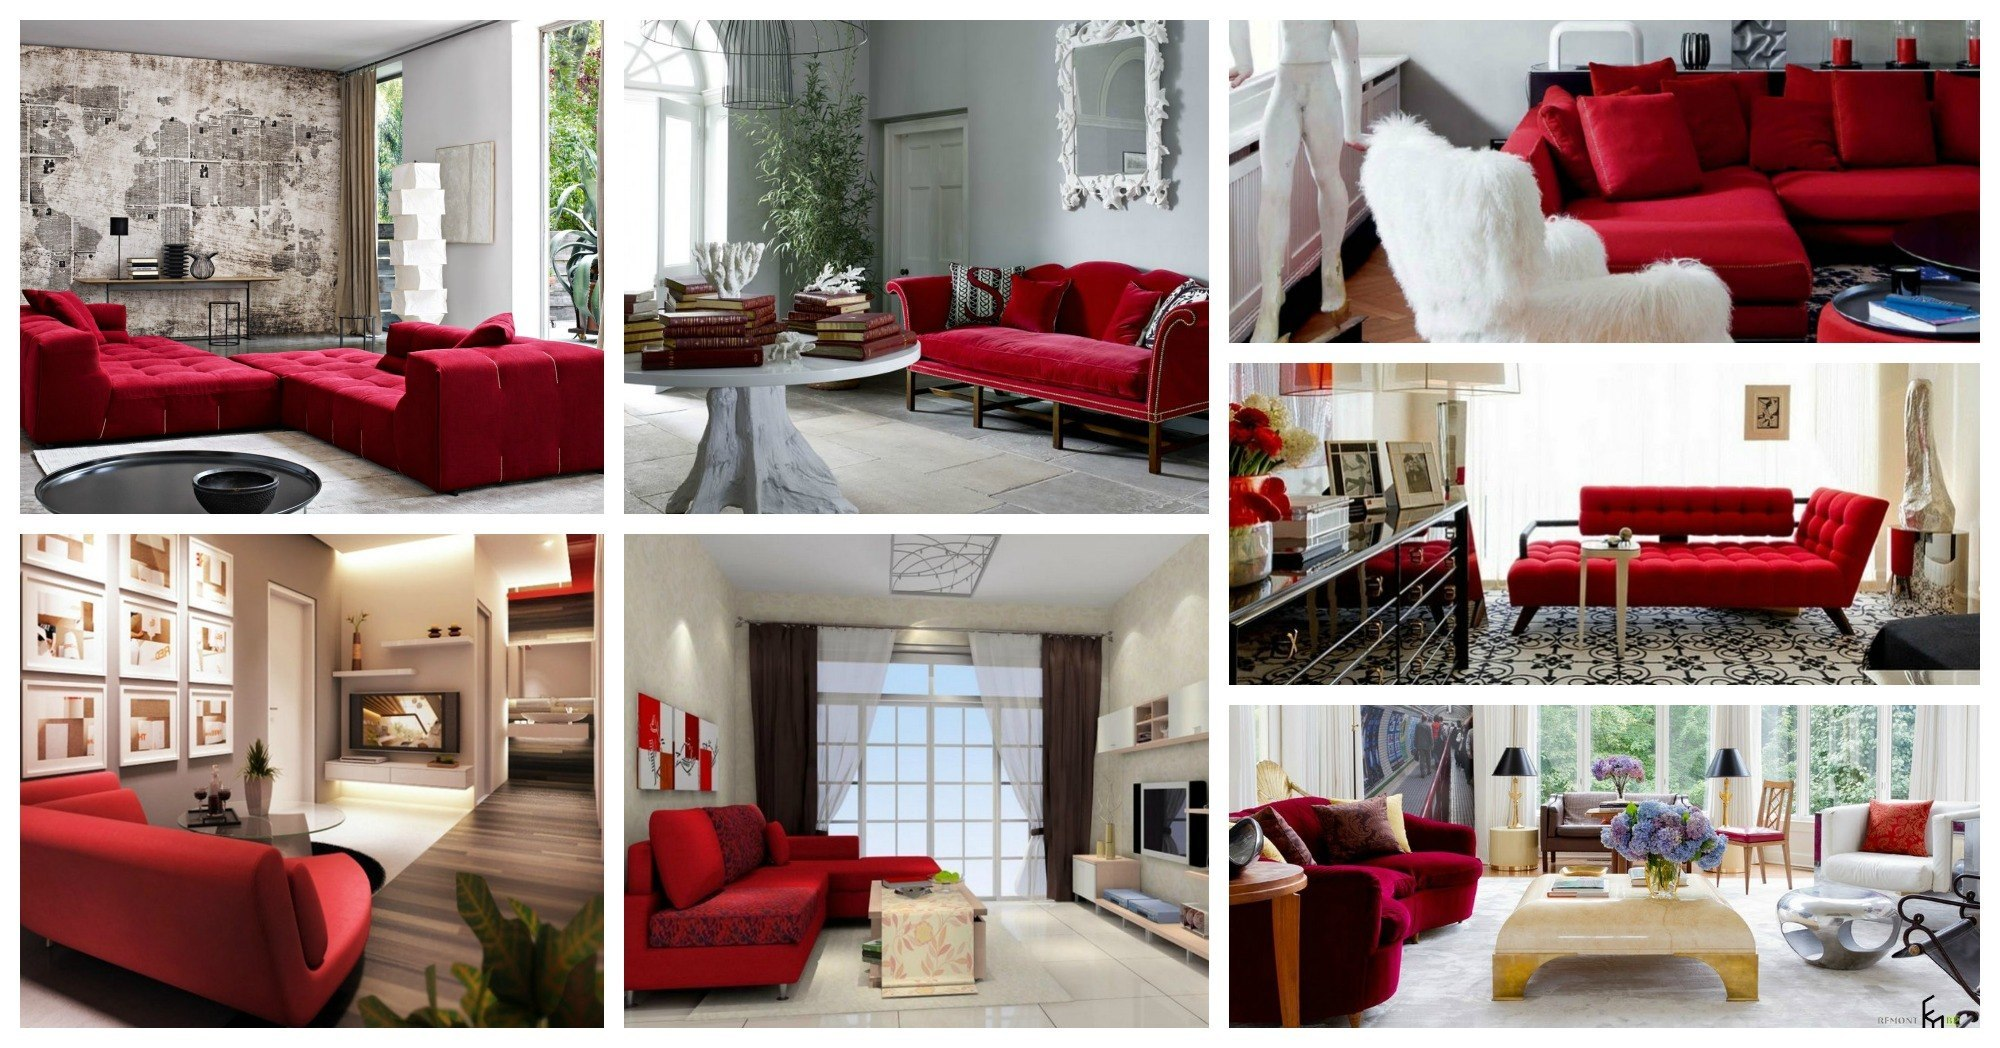 Remarkable Living Rooms With Red Couches That Will Catch Your Eye